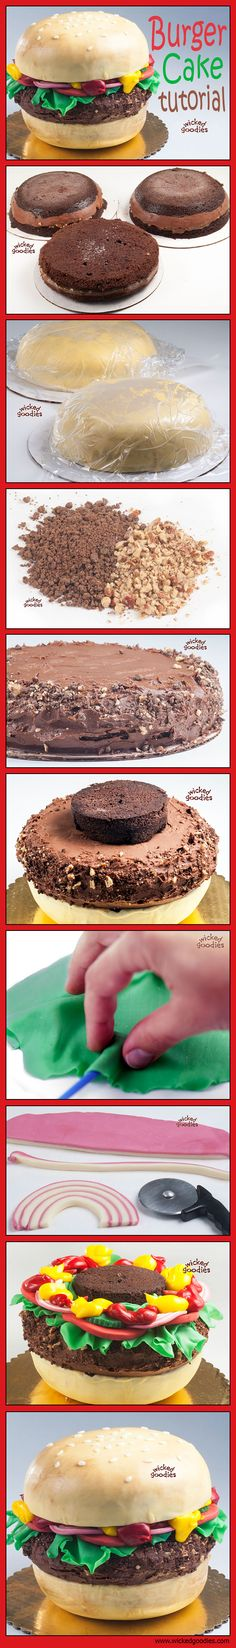 Burger Cake Tutorial by Wicked Goodies. One day I shall try to conquer this cake!